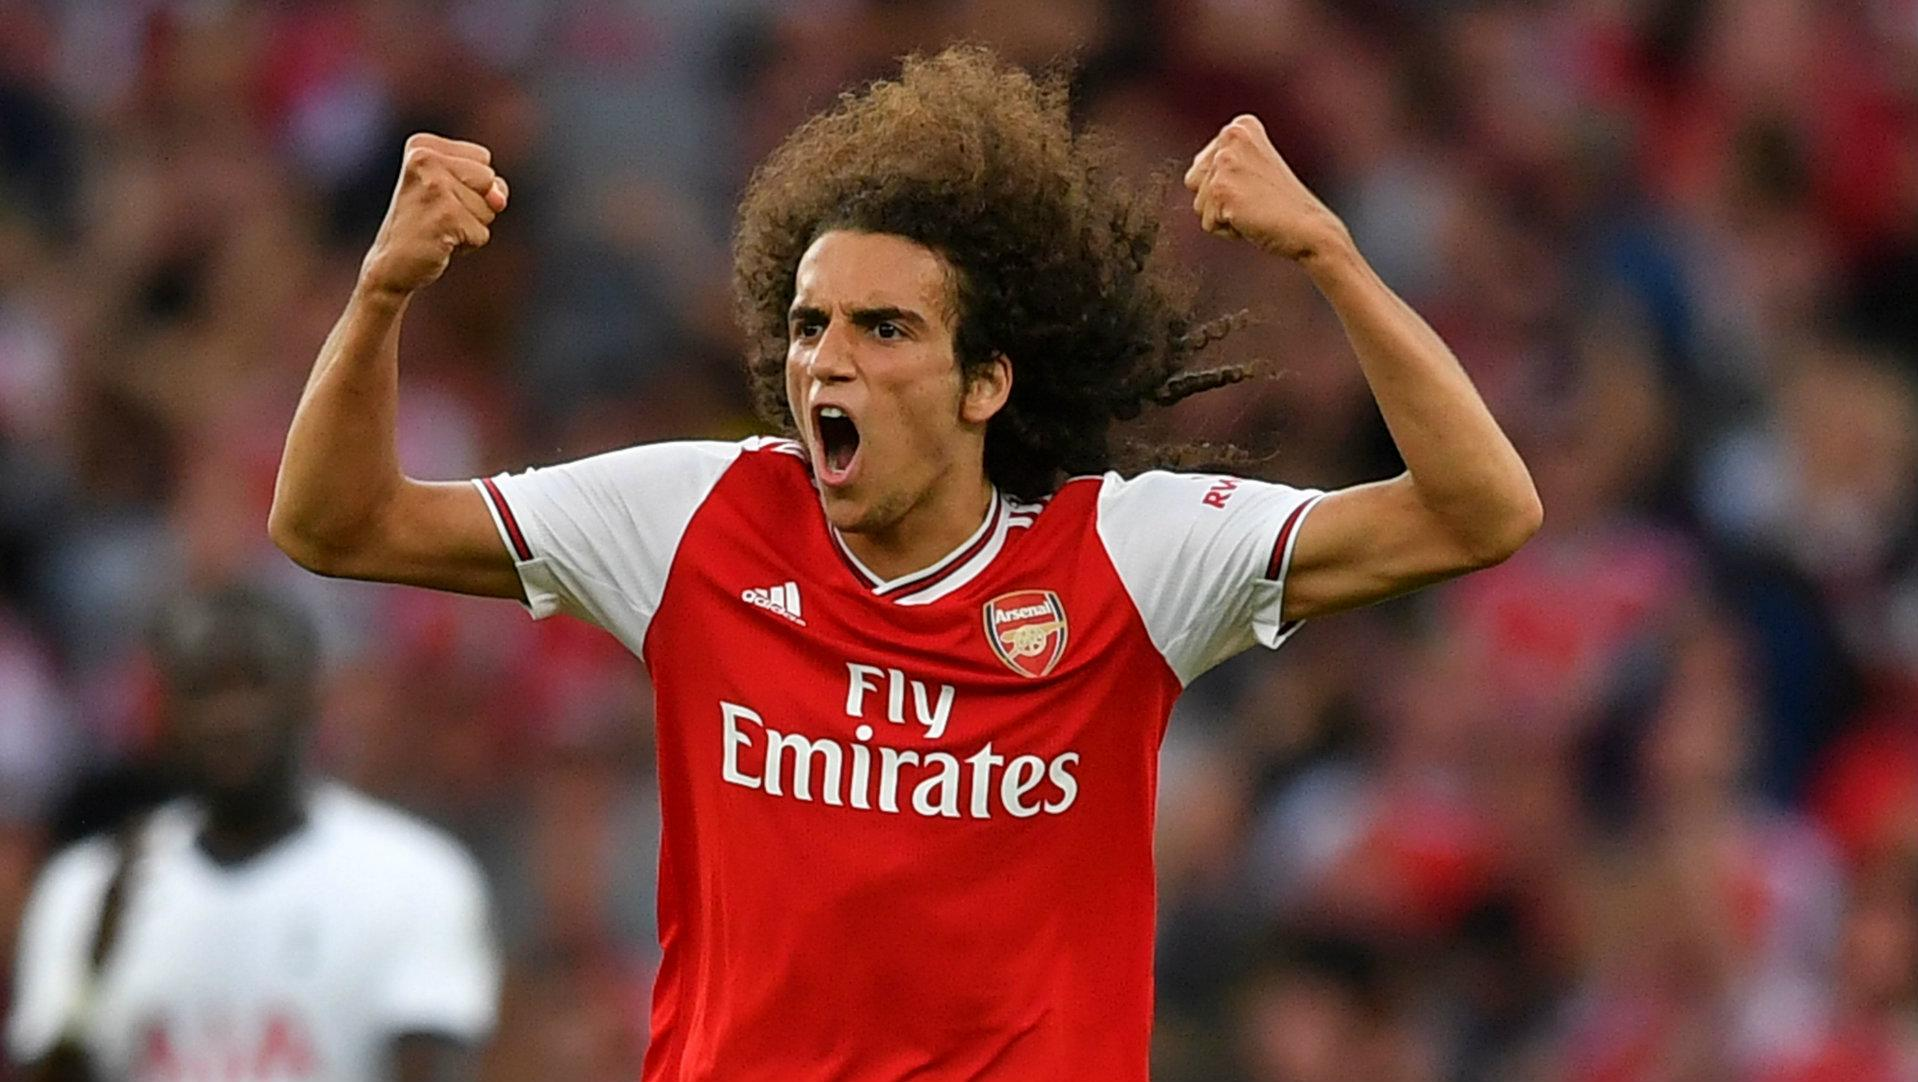 'Karate has helped me' - Guendouzi reveals martial arts training has helped football career - Yahoo Sports